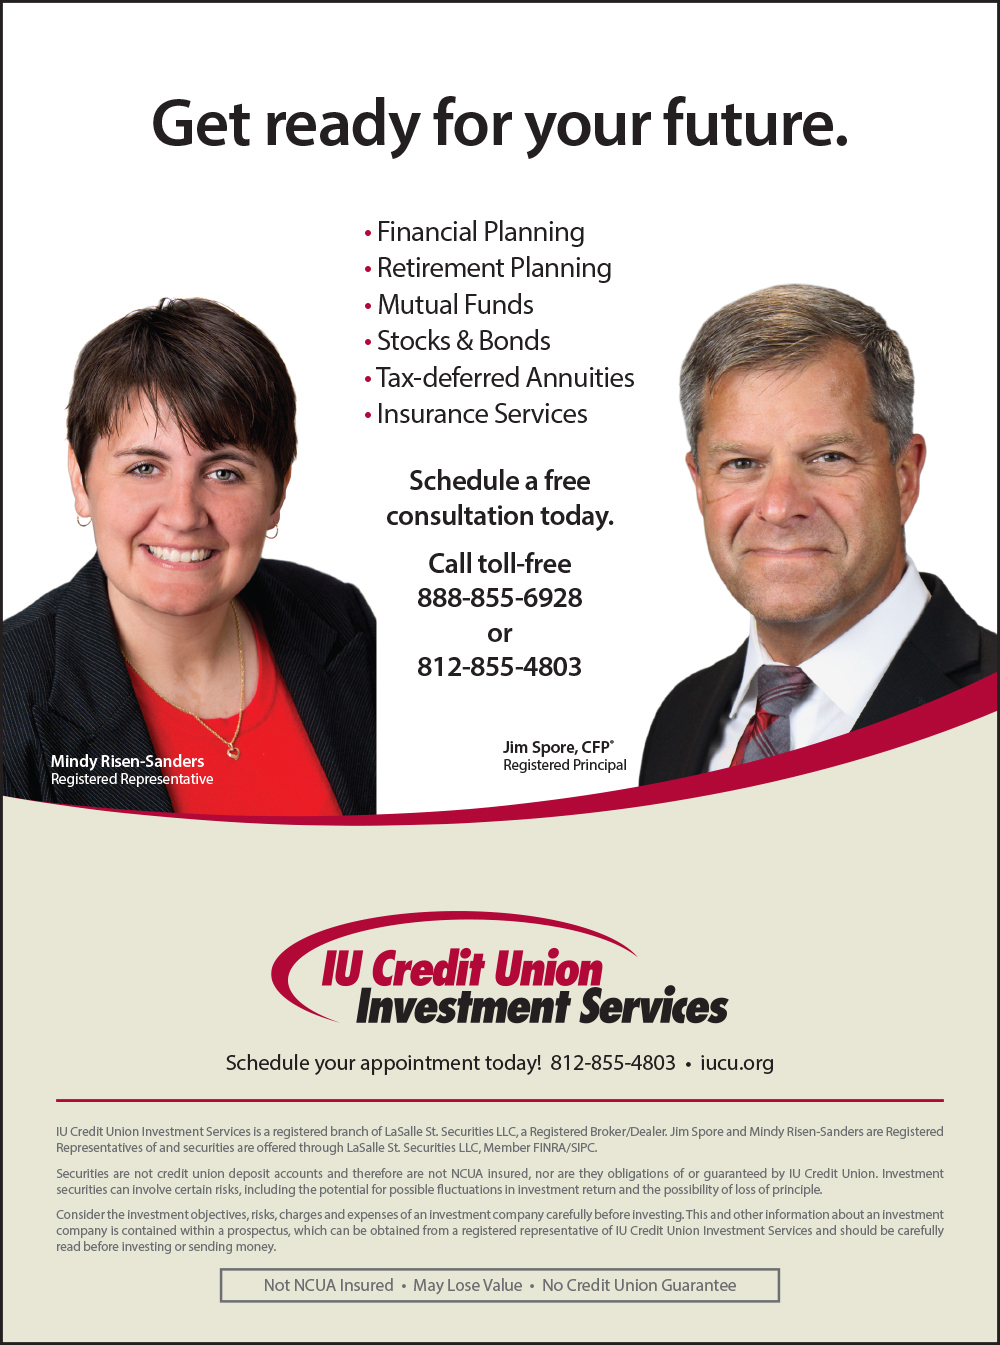 iu credit union phone number